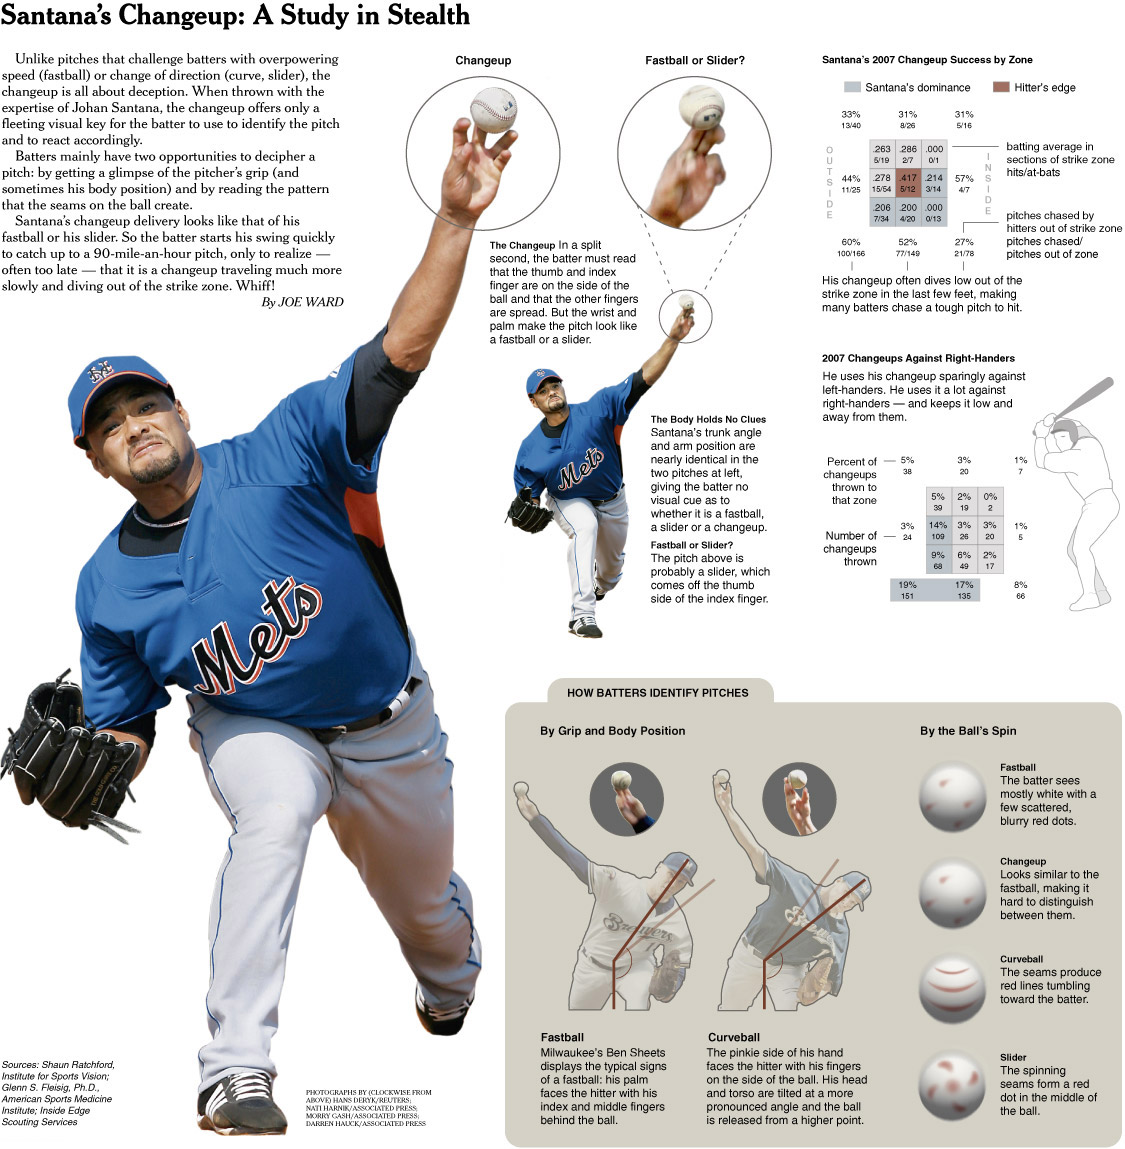 Link to the Times Article for this full Graphic